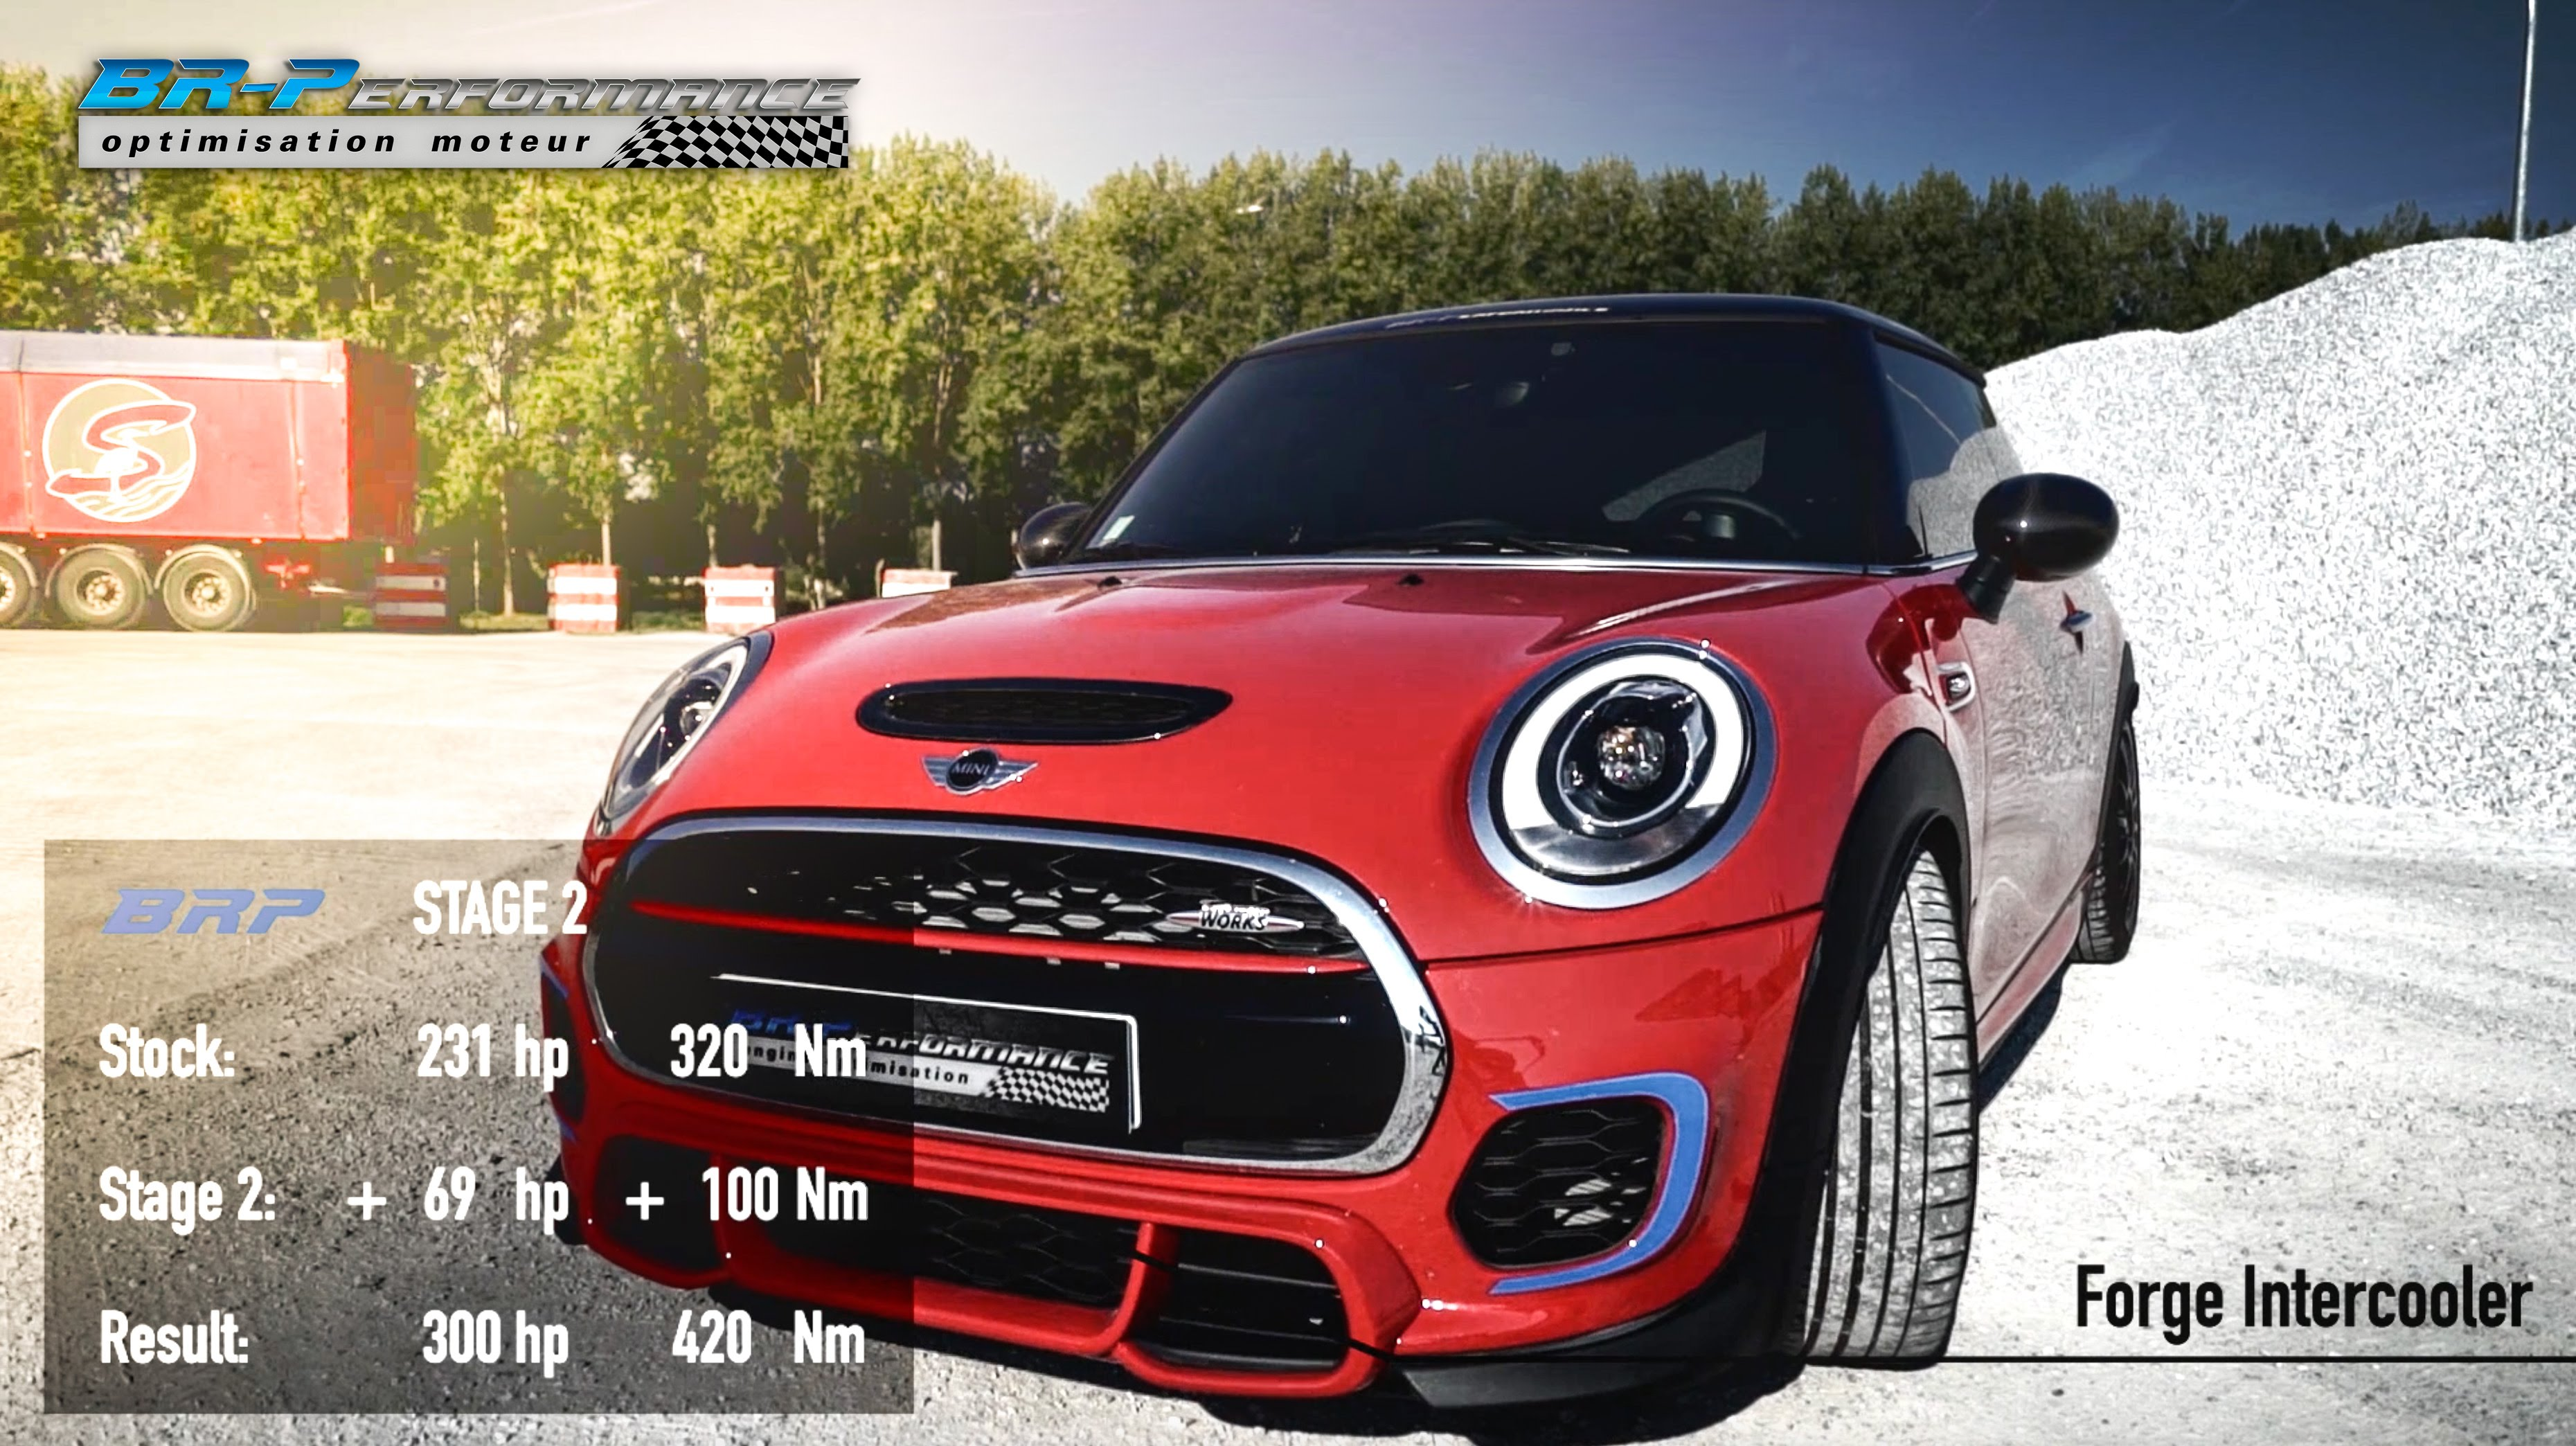 Video Stage 2 Mini Jcw From Br Performance Claimed To Have 300 Hp